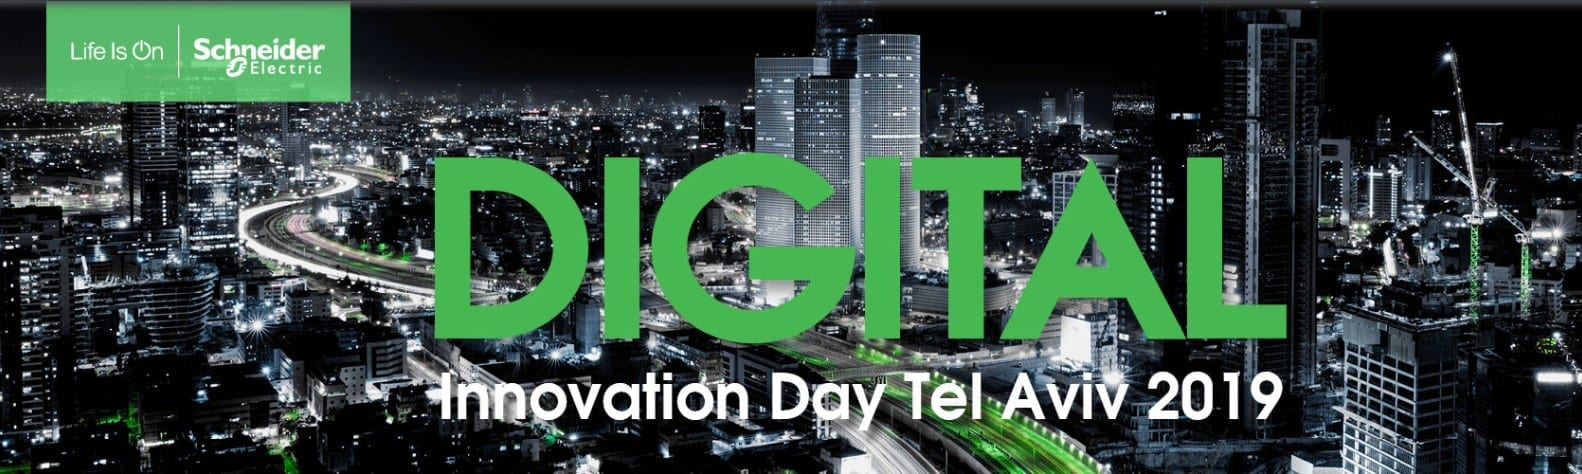 Digital innovation day schneider electric